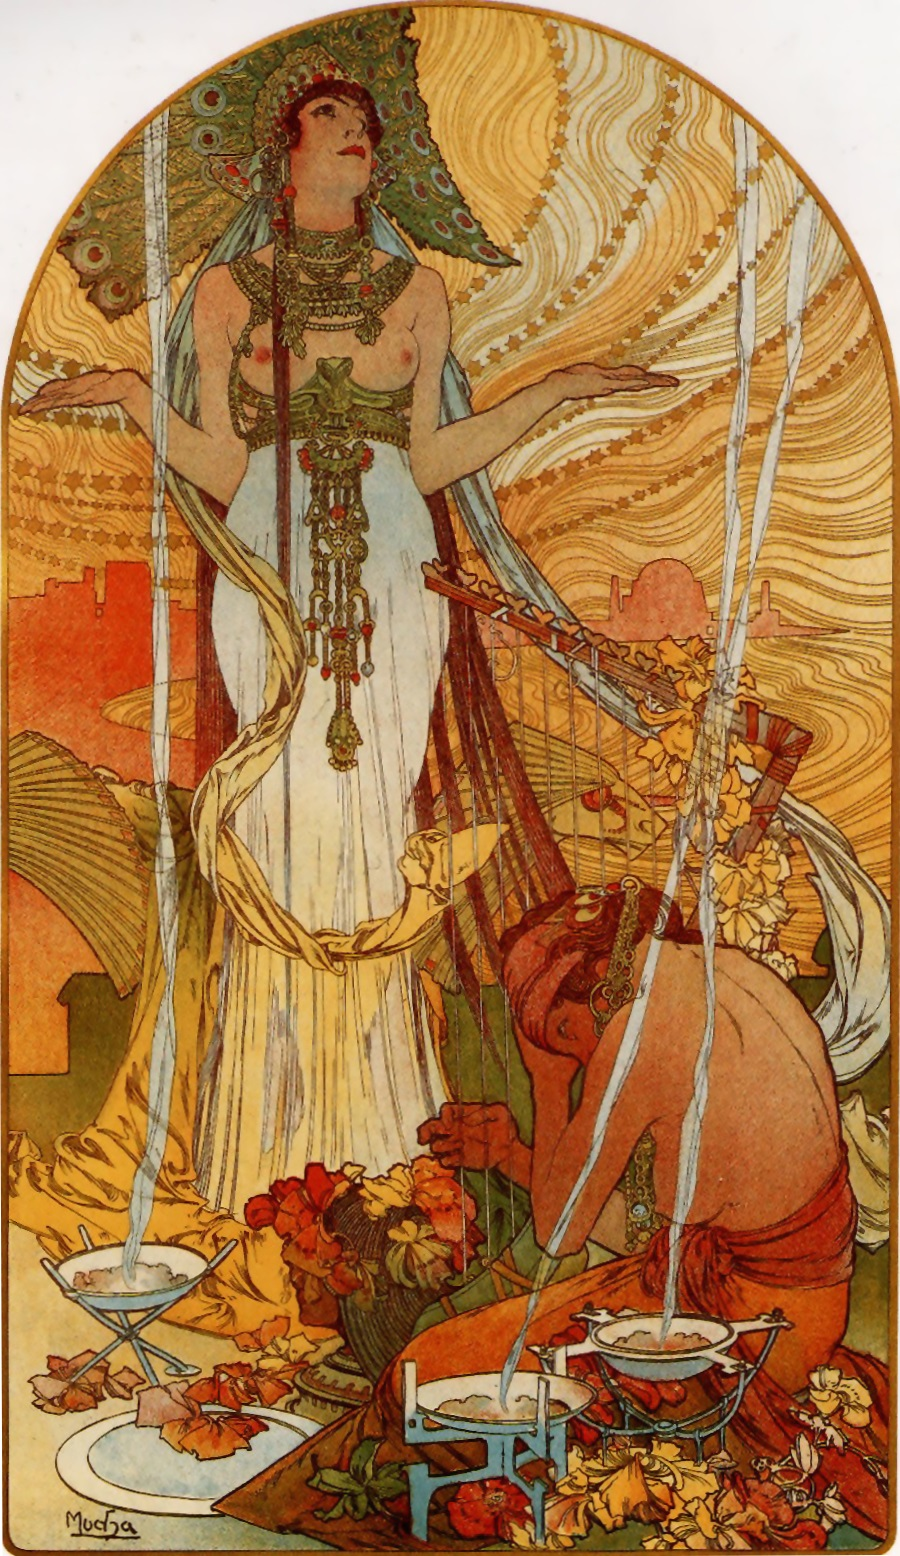 https://i2.wp.com/upload.wikimedia.org/wikipedia/commons/4/46/Alfons_Mucha_-_1896_-_Salammb%C3%B4.jpg